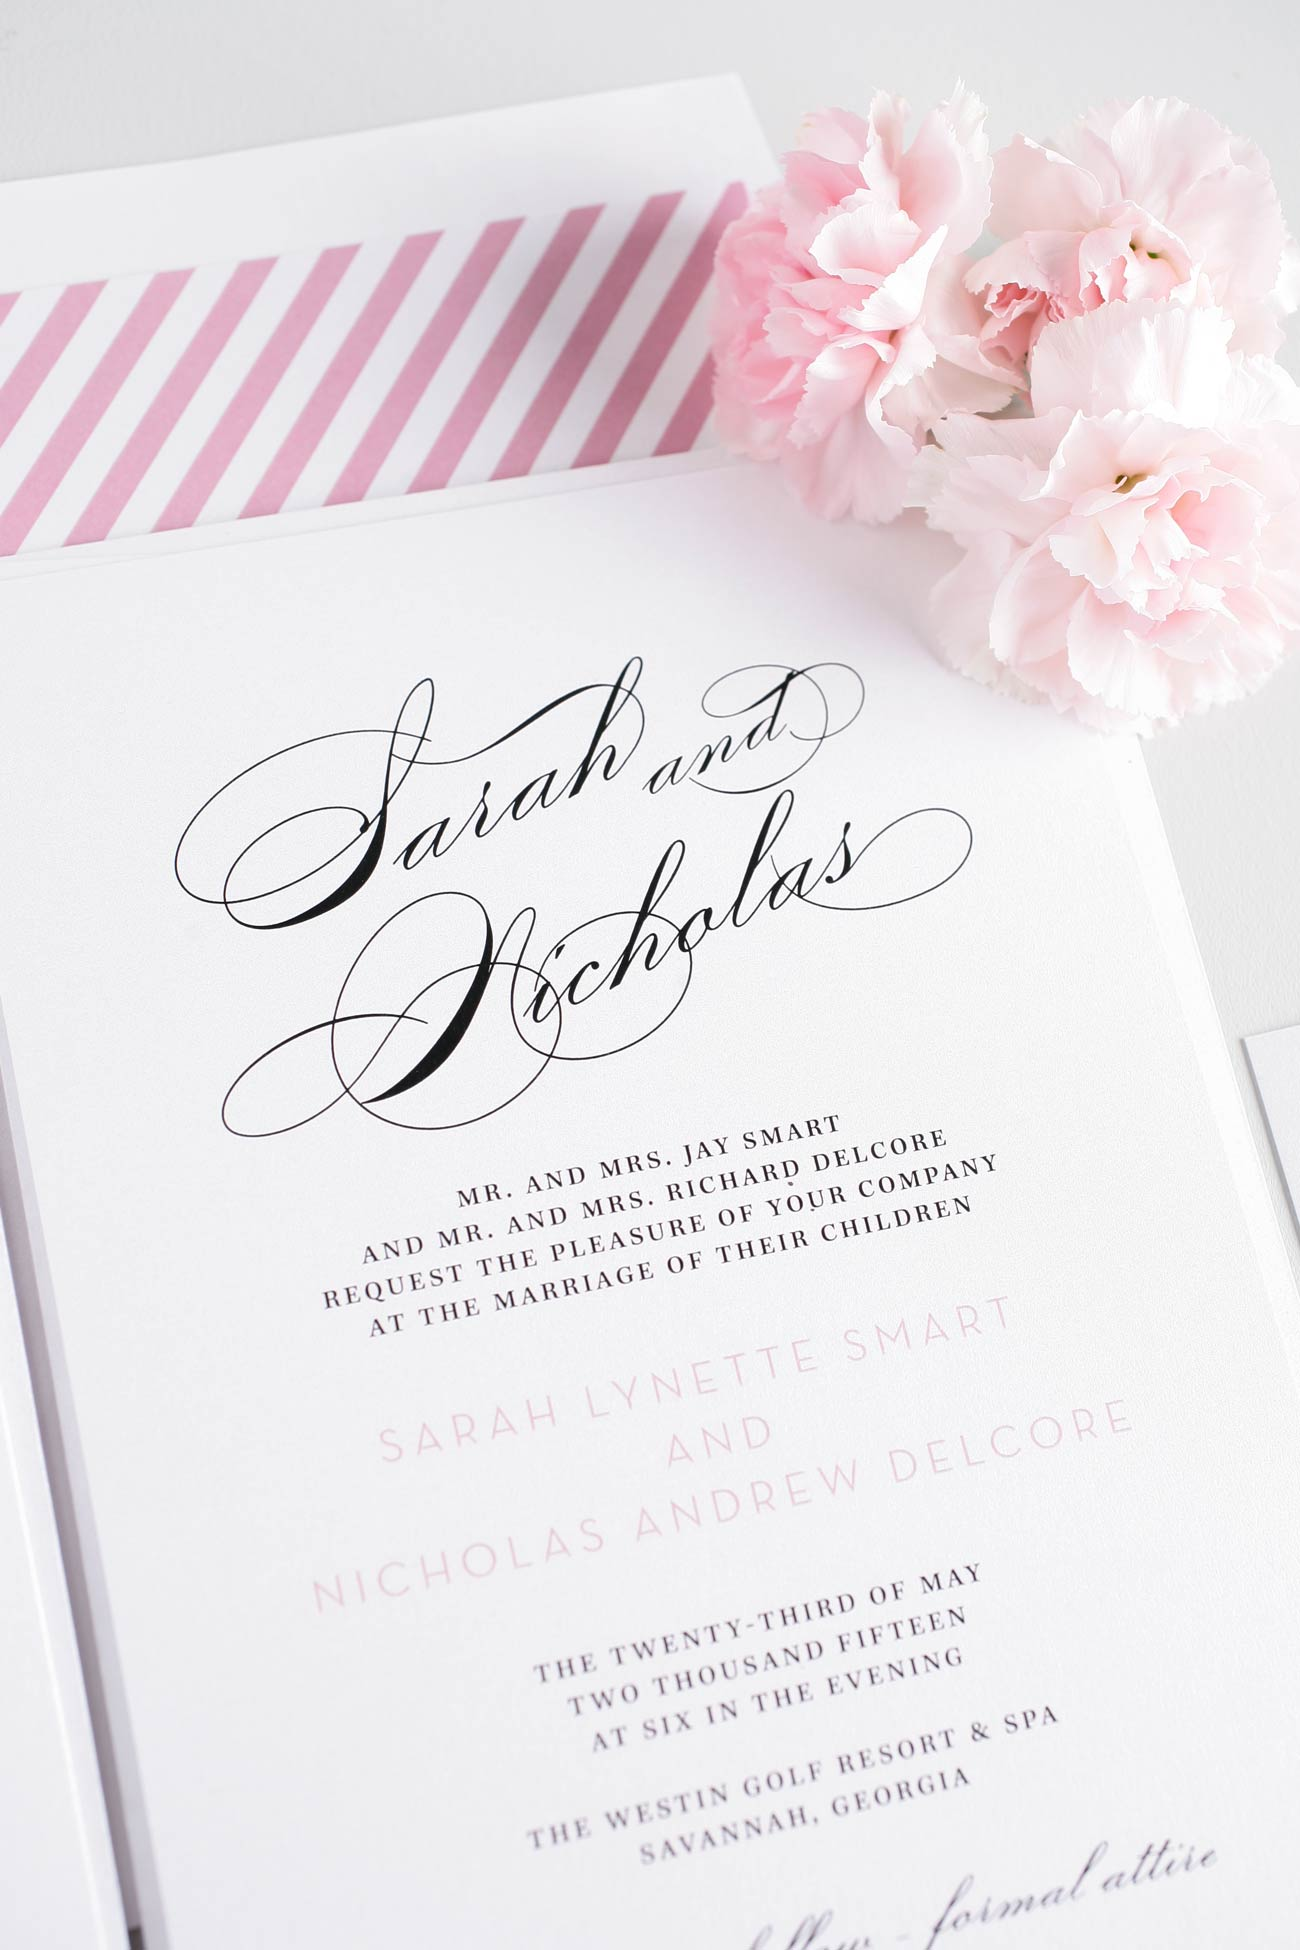 Glamorous Wedding Invitations in blossom light pink